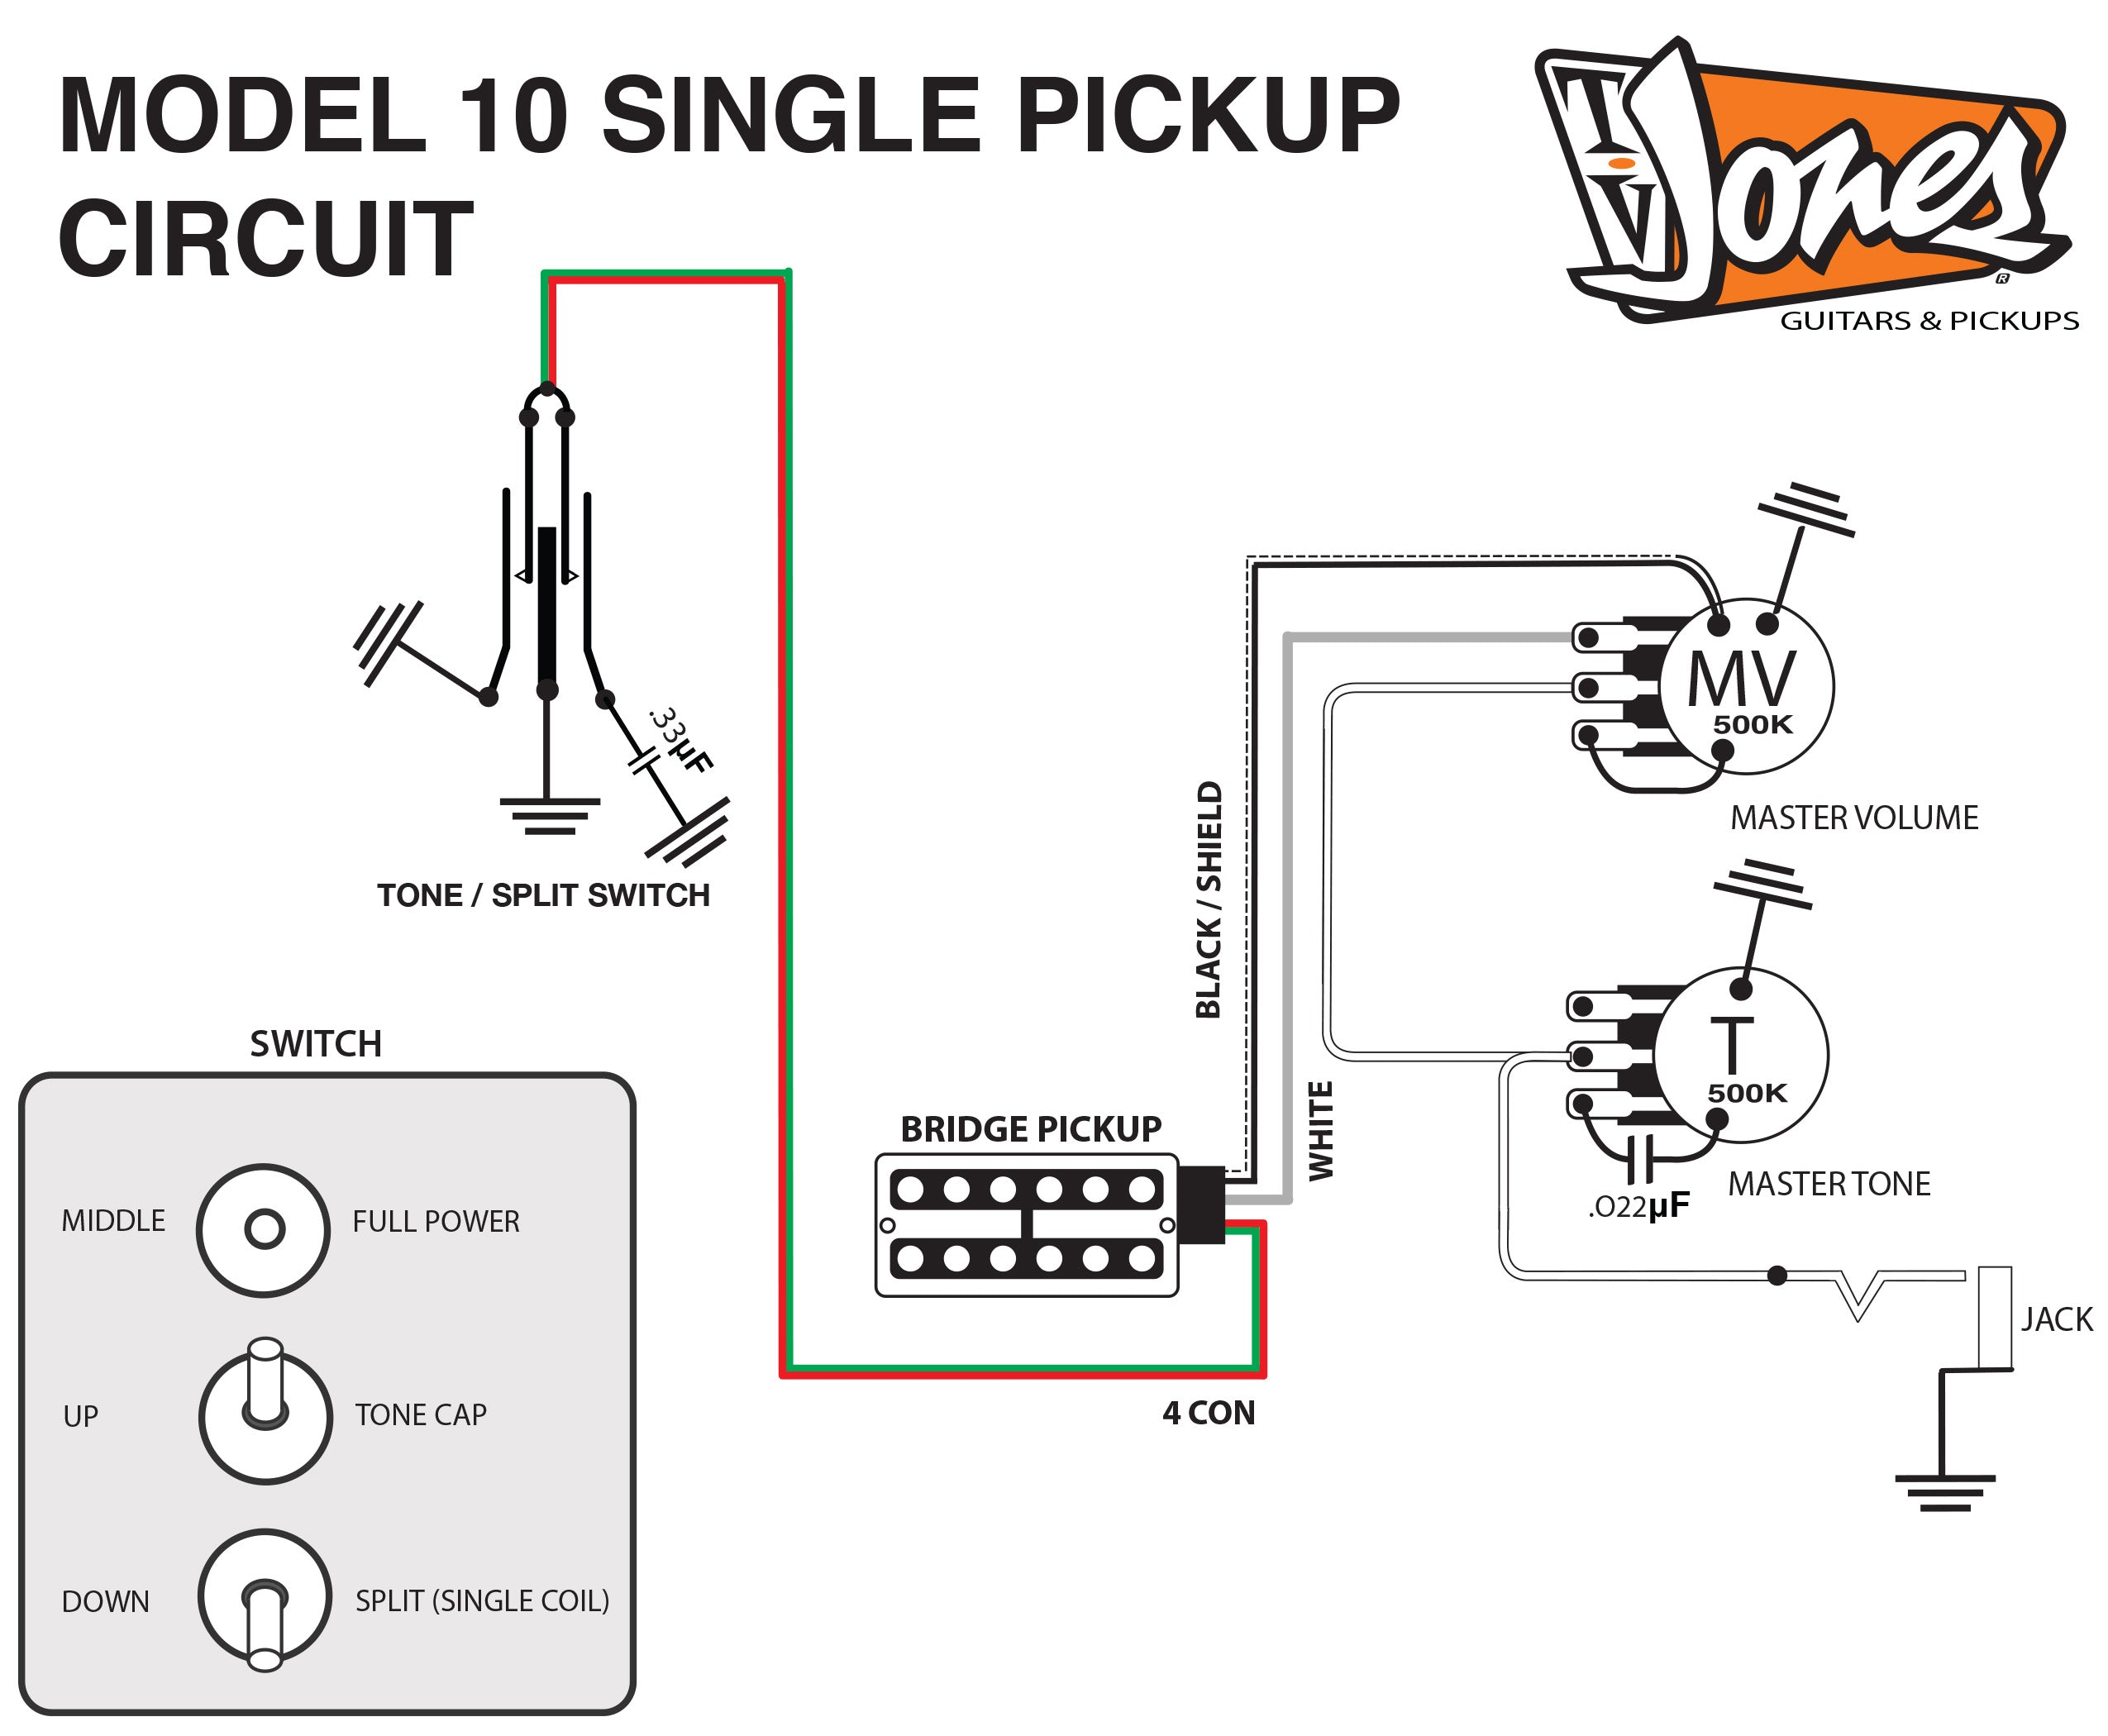 tv jones product dimensions gretsch style wiring diagram gretsch pickup wiring diagram #11